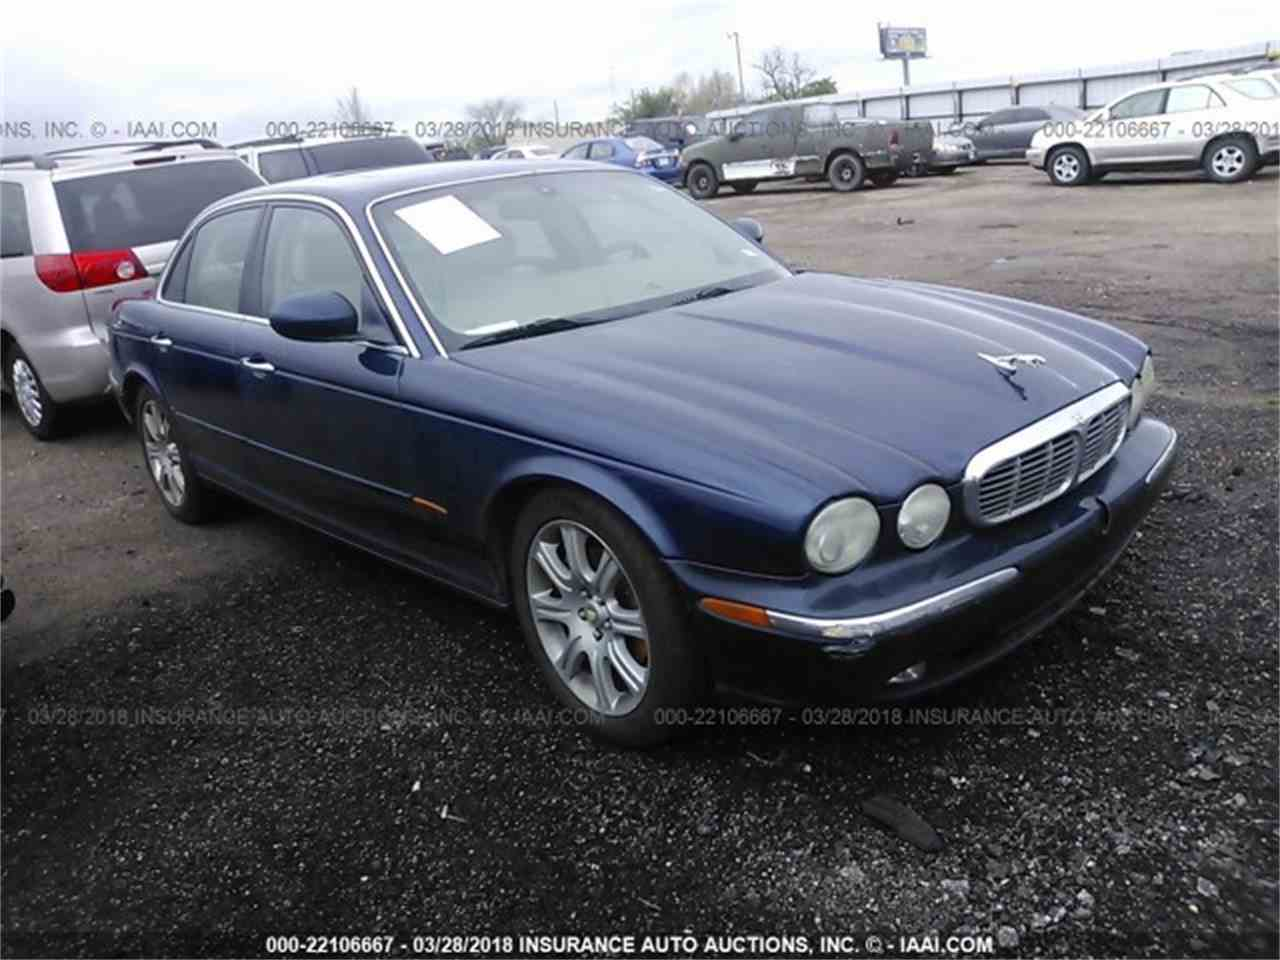 forums sale img trade buy classifieds northeast jaguar private fs for forum